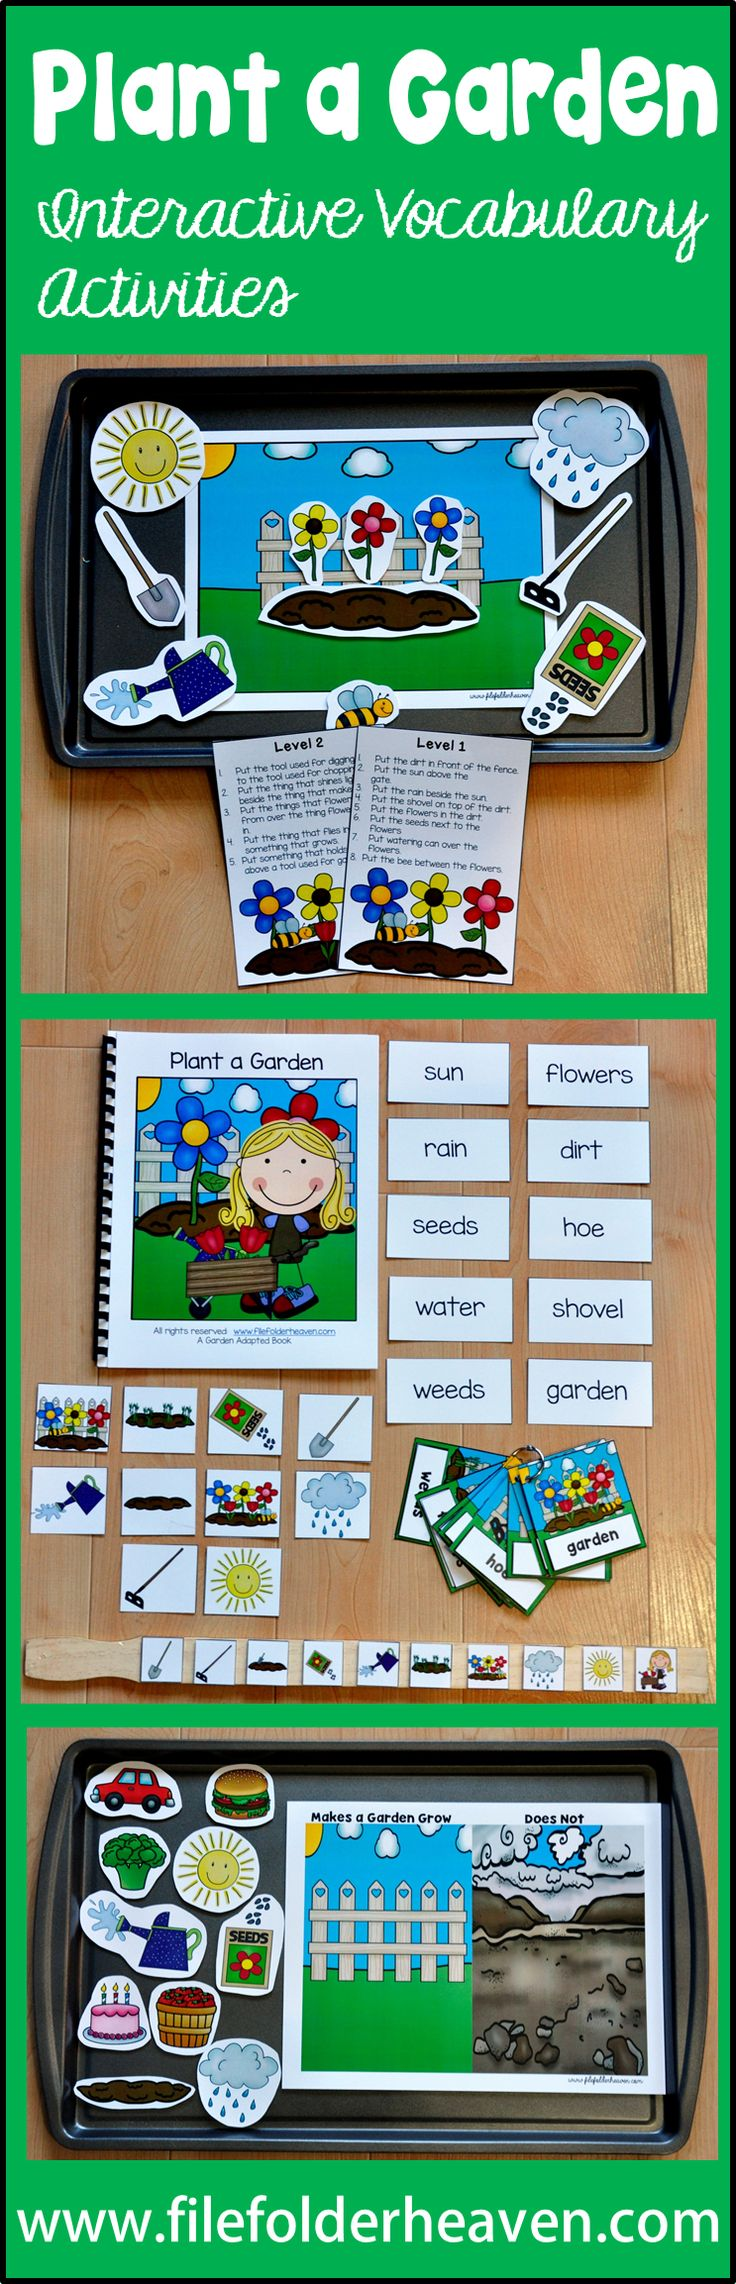 """Plant a garden. Watch it grow. Grab the shovel! Grab the hoe!""  The ""Plant a Garden"" Adapted Books Unit is a spring themed unit that focuses on garden vocabulary. This unit includes 2 adapted books, 3 file folder games, 2 cookie sheet activities, 1 clothespin task and 1 set of vocabulary handwriting sheets.  This unit has just been UPDATED!!!  (1/2016)  In addition to all of the above activities, this unit now includes an updated adapted book and 4 new vocabulary extension activities."